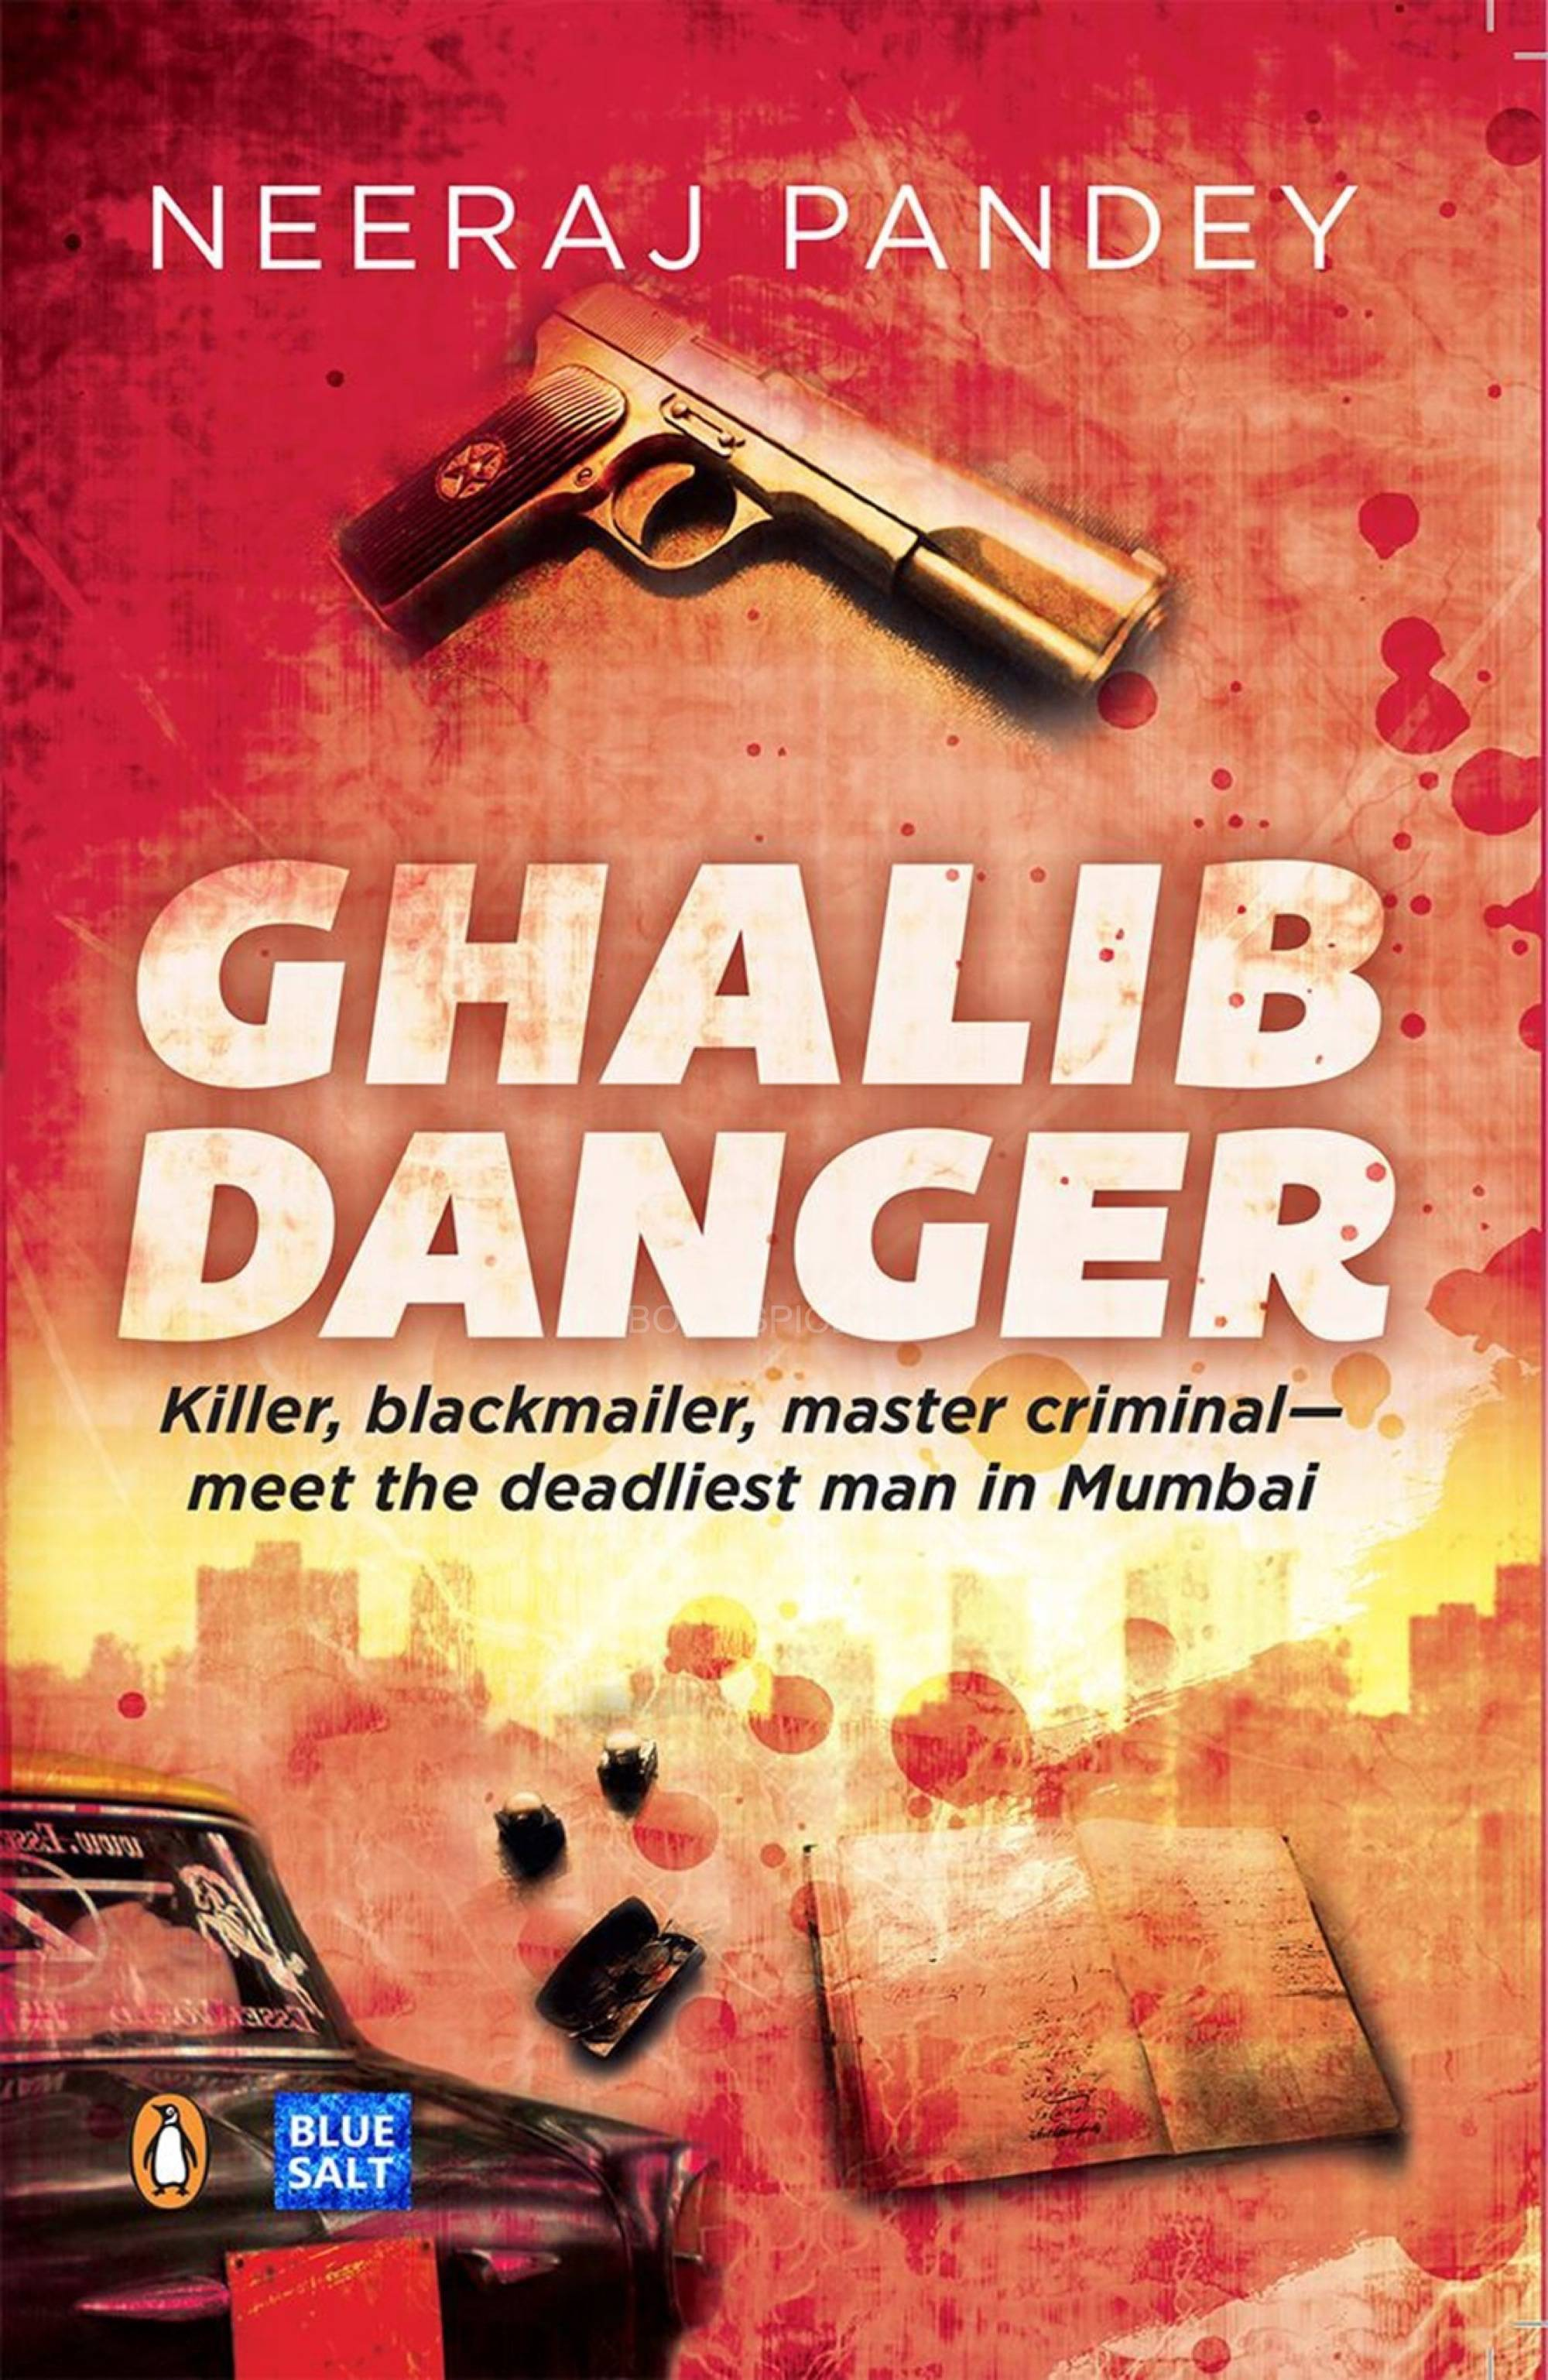 Ghalib Danger Book Cover Neeraj Pandeys debut novel 'Ghalib Danger' launched in Mumbai!